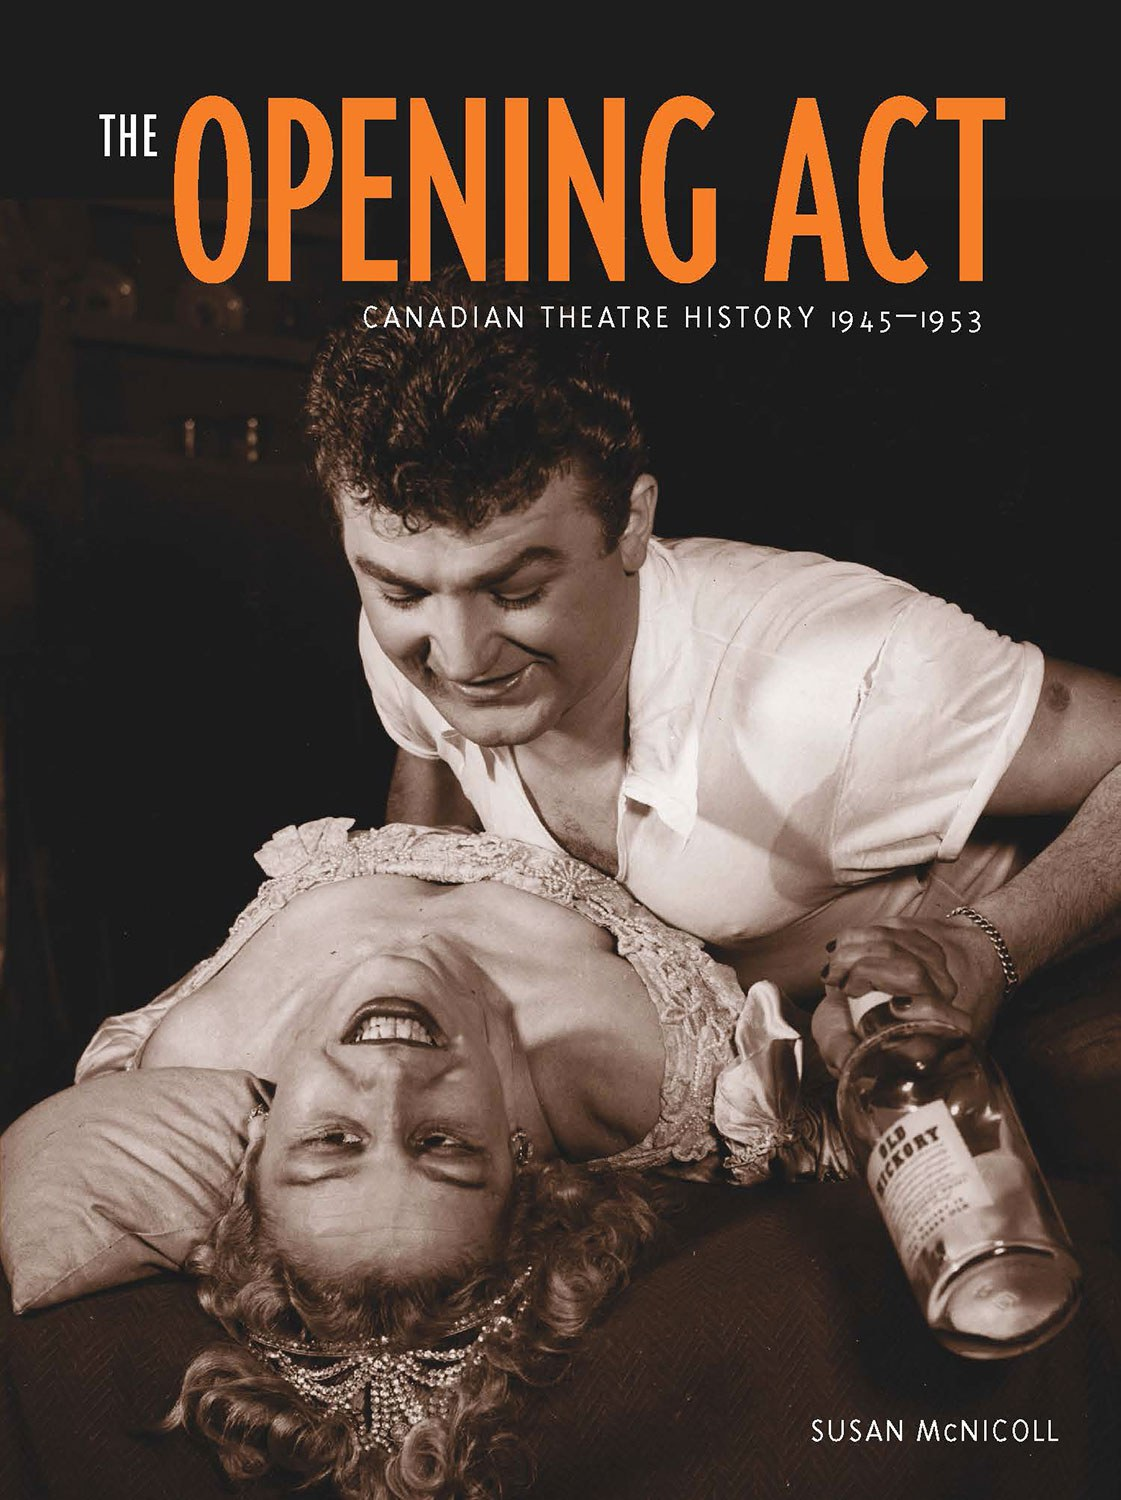 The Opening Act: Canadian Theatre History 1945-1953, by Susan McNicoll. Ronsdale Press, 2012.